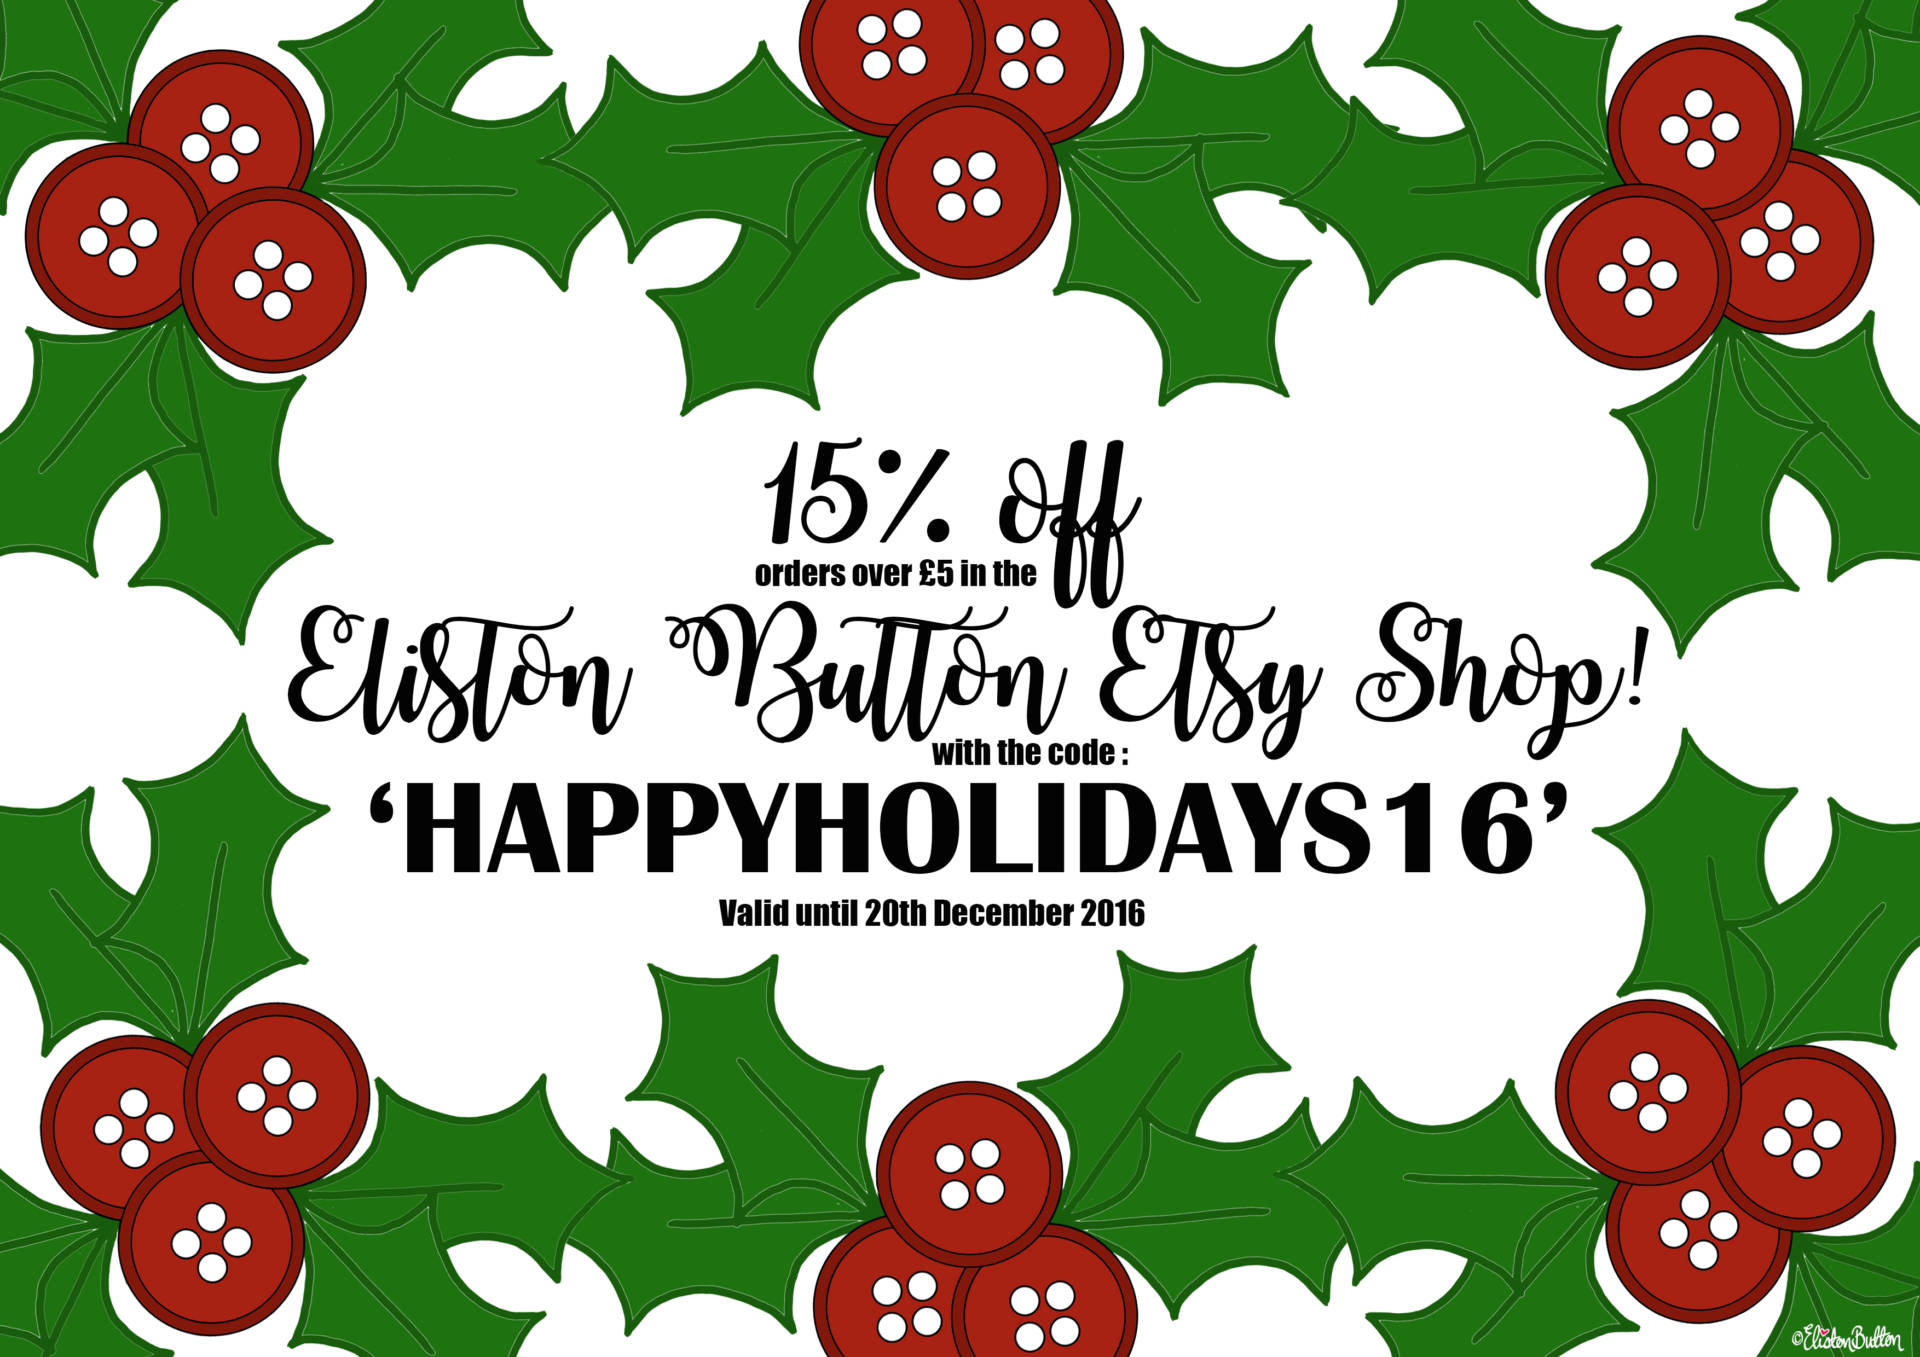 Happy Holidays Discount Code for the Eliston Button Etsy Shop - Christmas Gift Guide, Last Postage Dates and a Present for You!